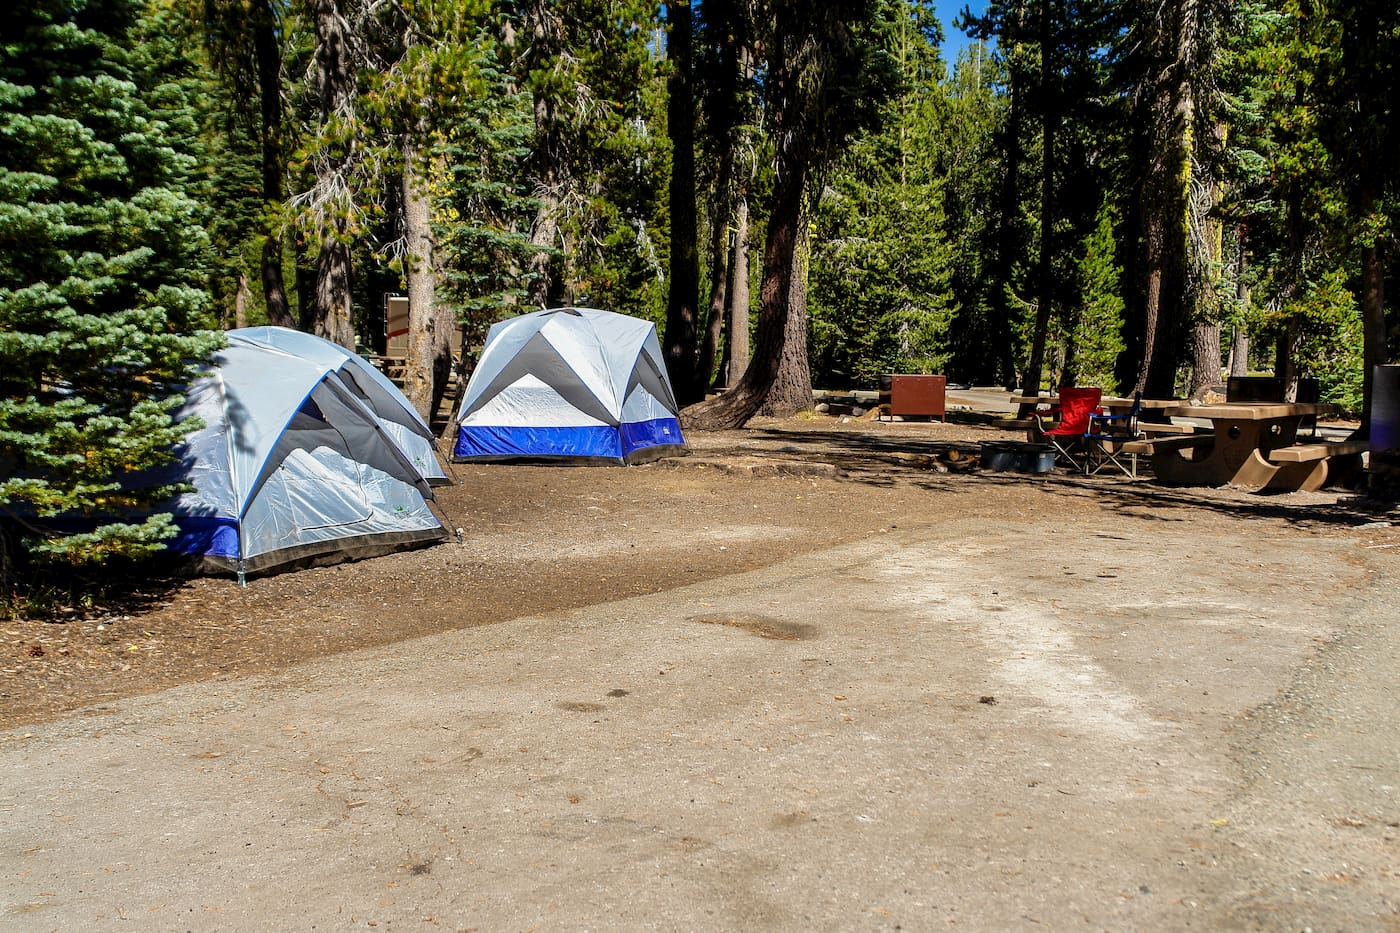 A campsite with tents and a picnic table set up in the forest.